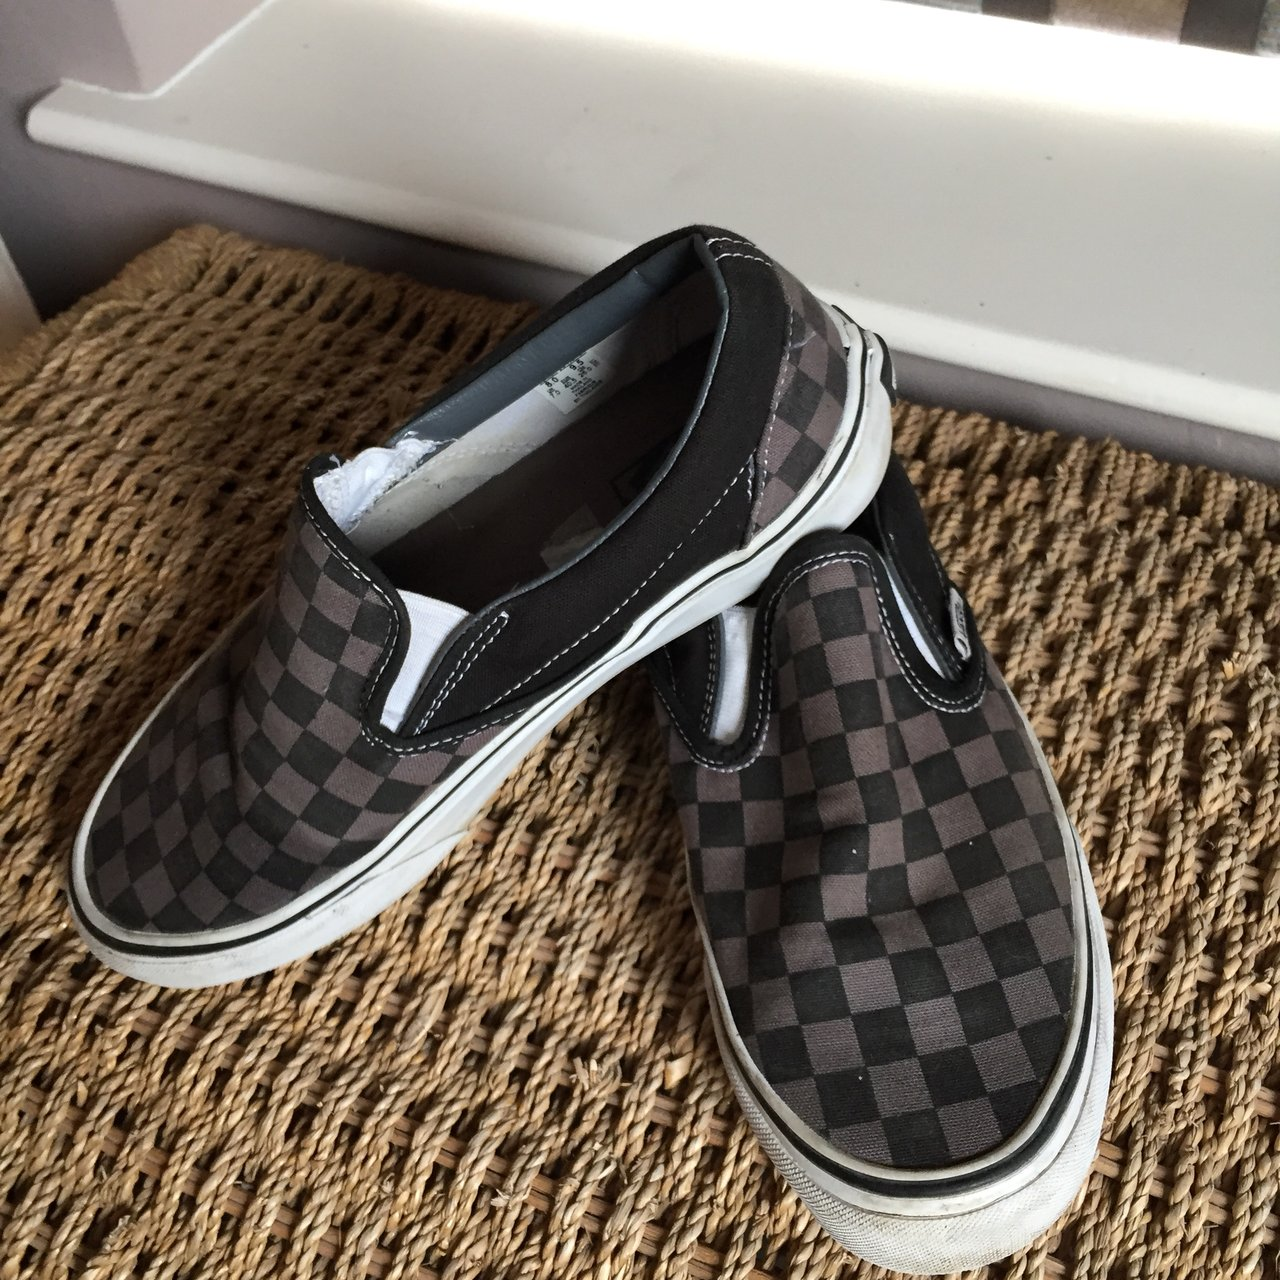 073d1dae13a Vans Grey Checkerboard Slip-on shoes. Great condition worn). - Depop